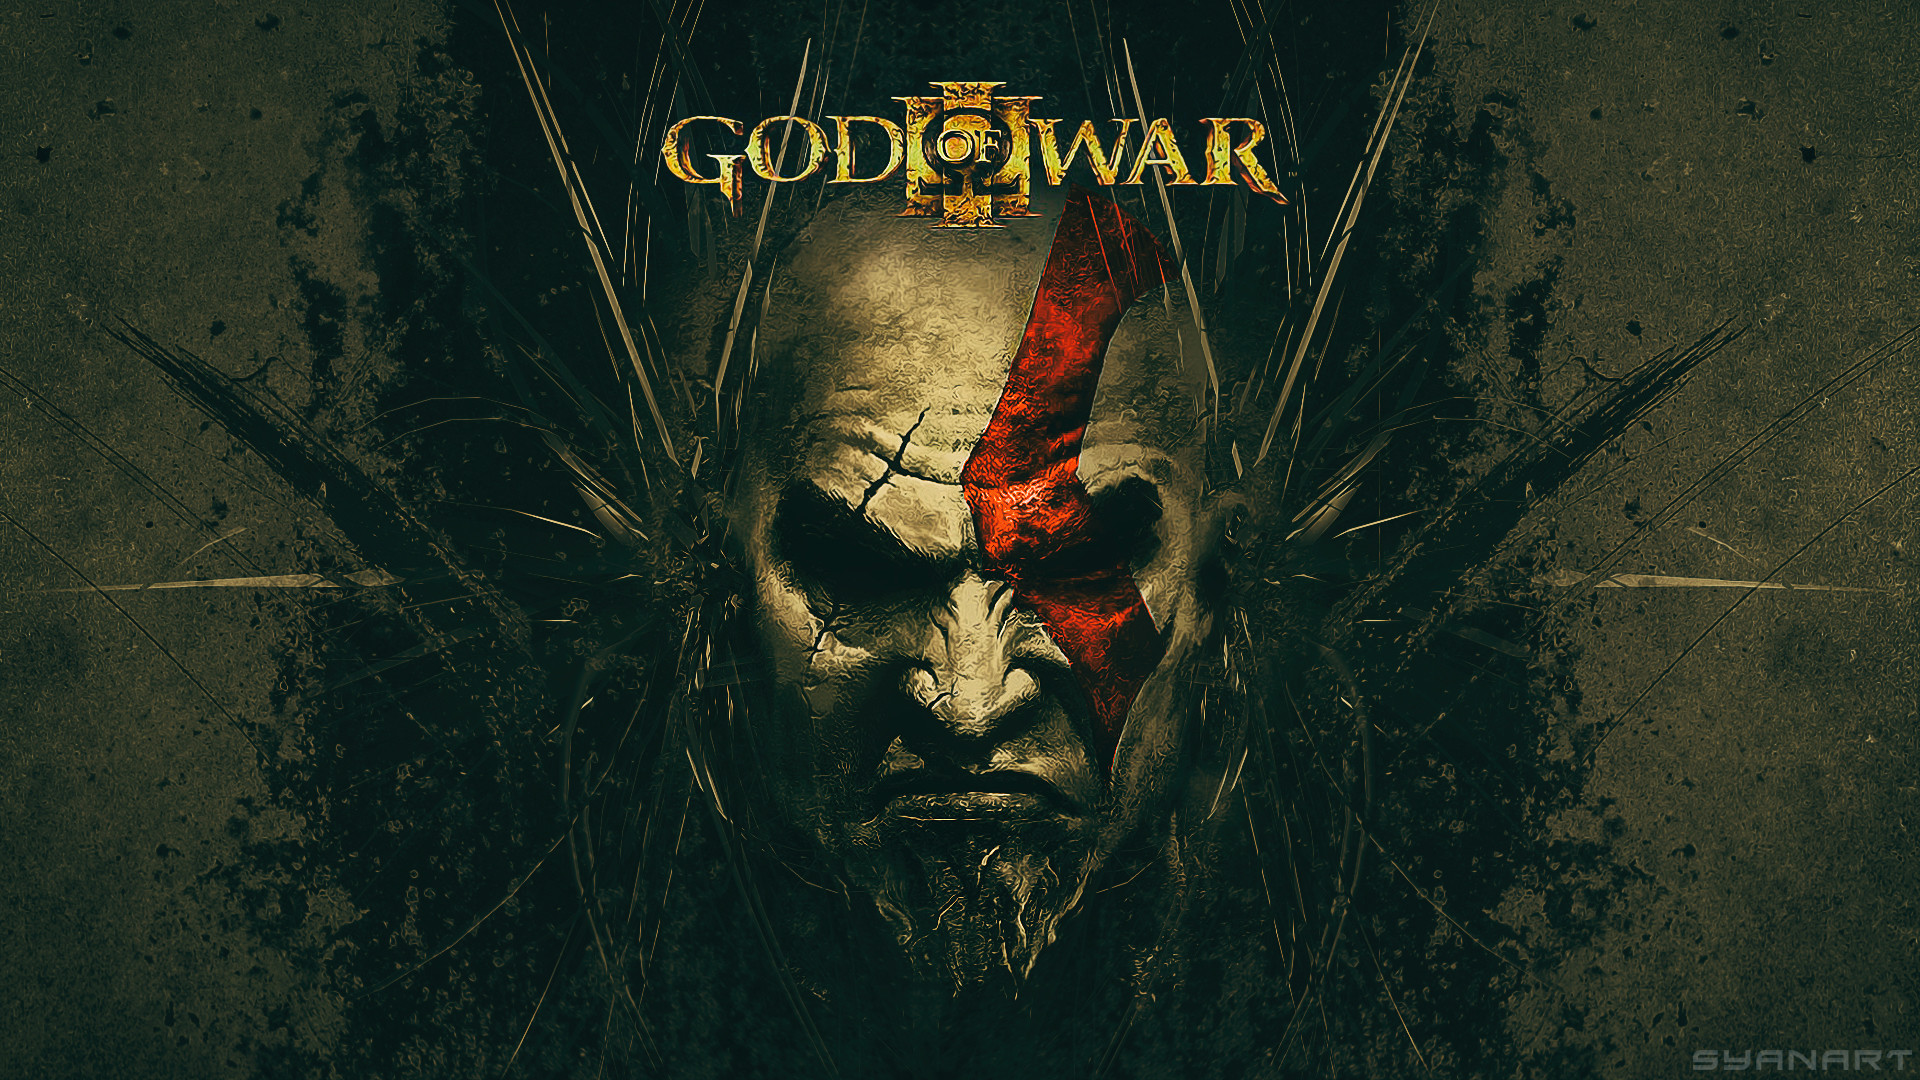 god of war 3 wallpaper hd (82+ images)